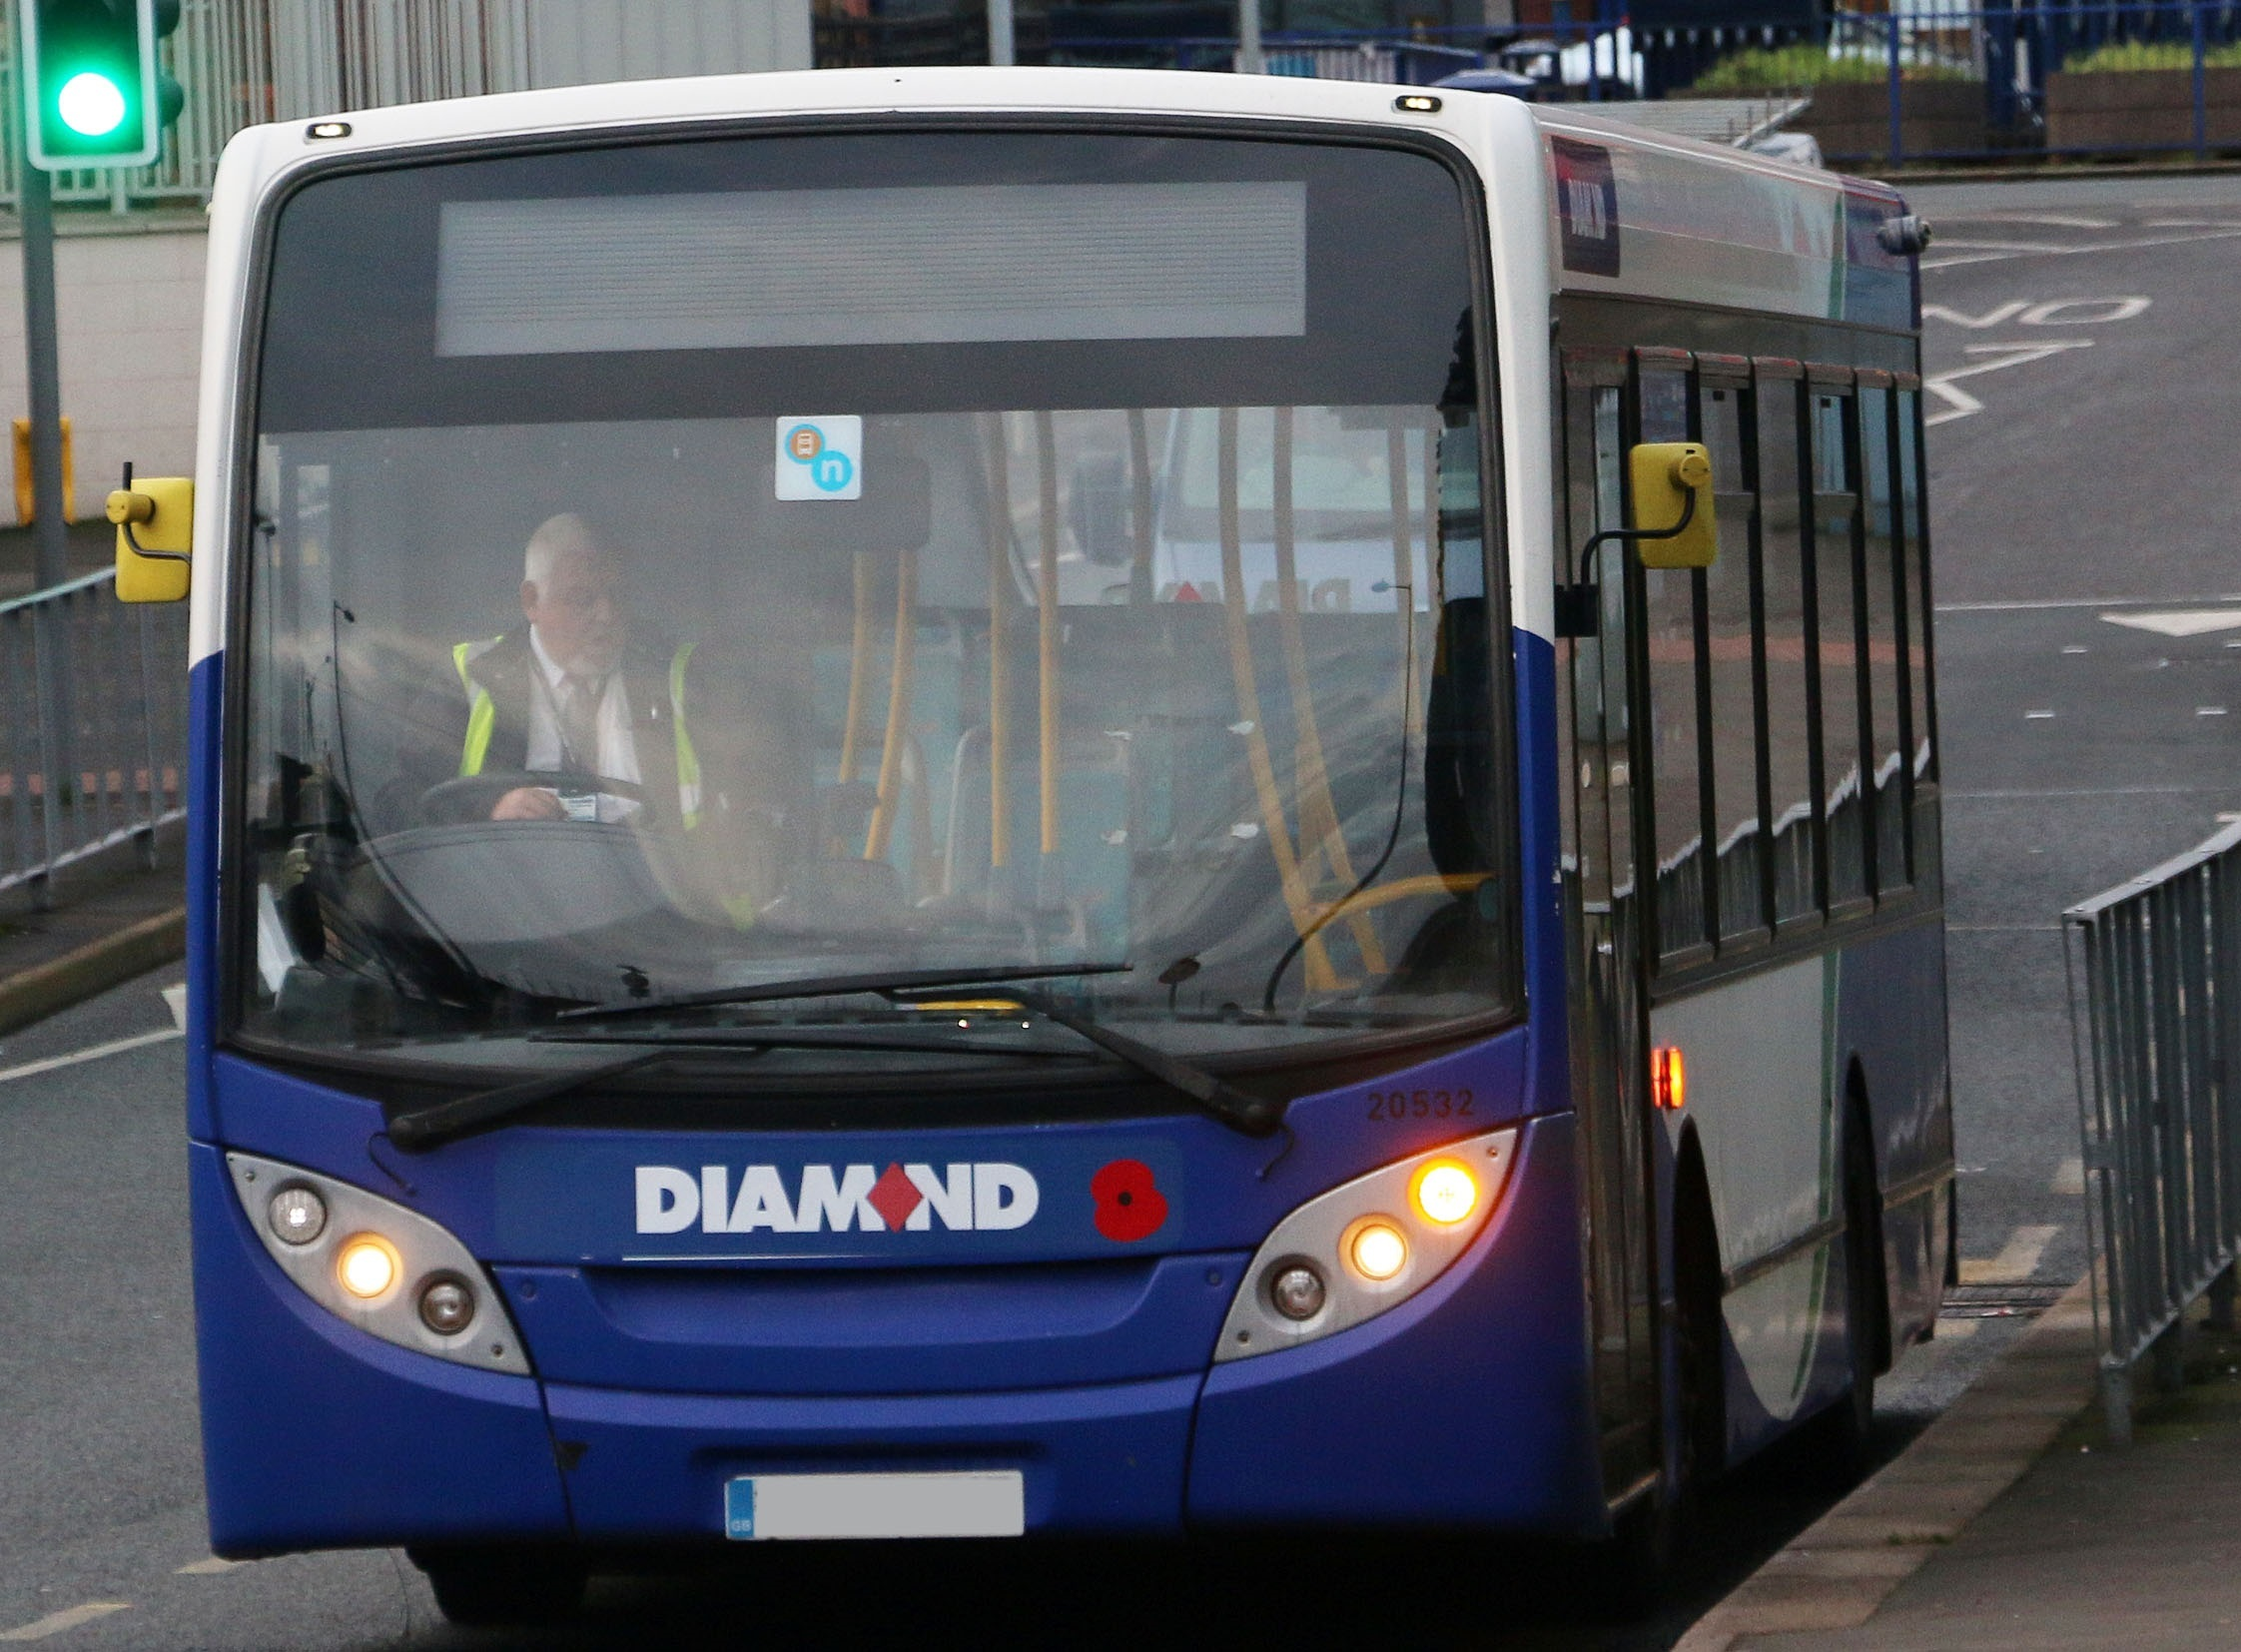 Diamond Buses is increasing some fares from January 2